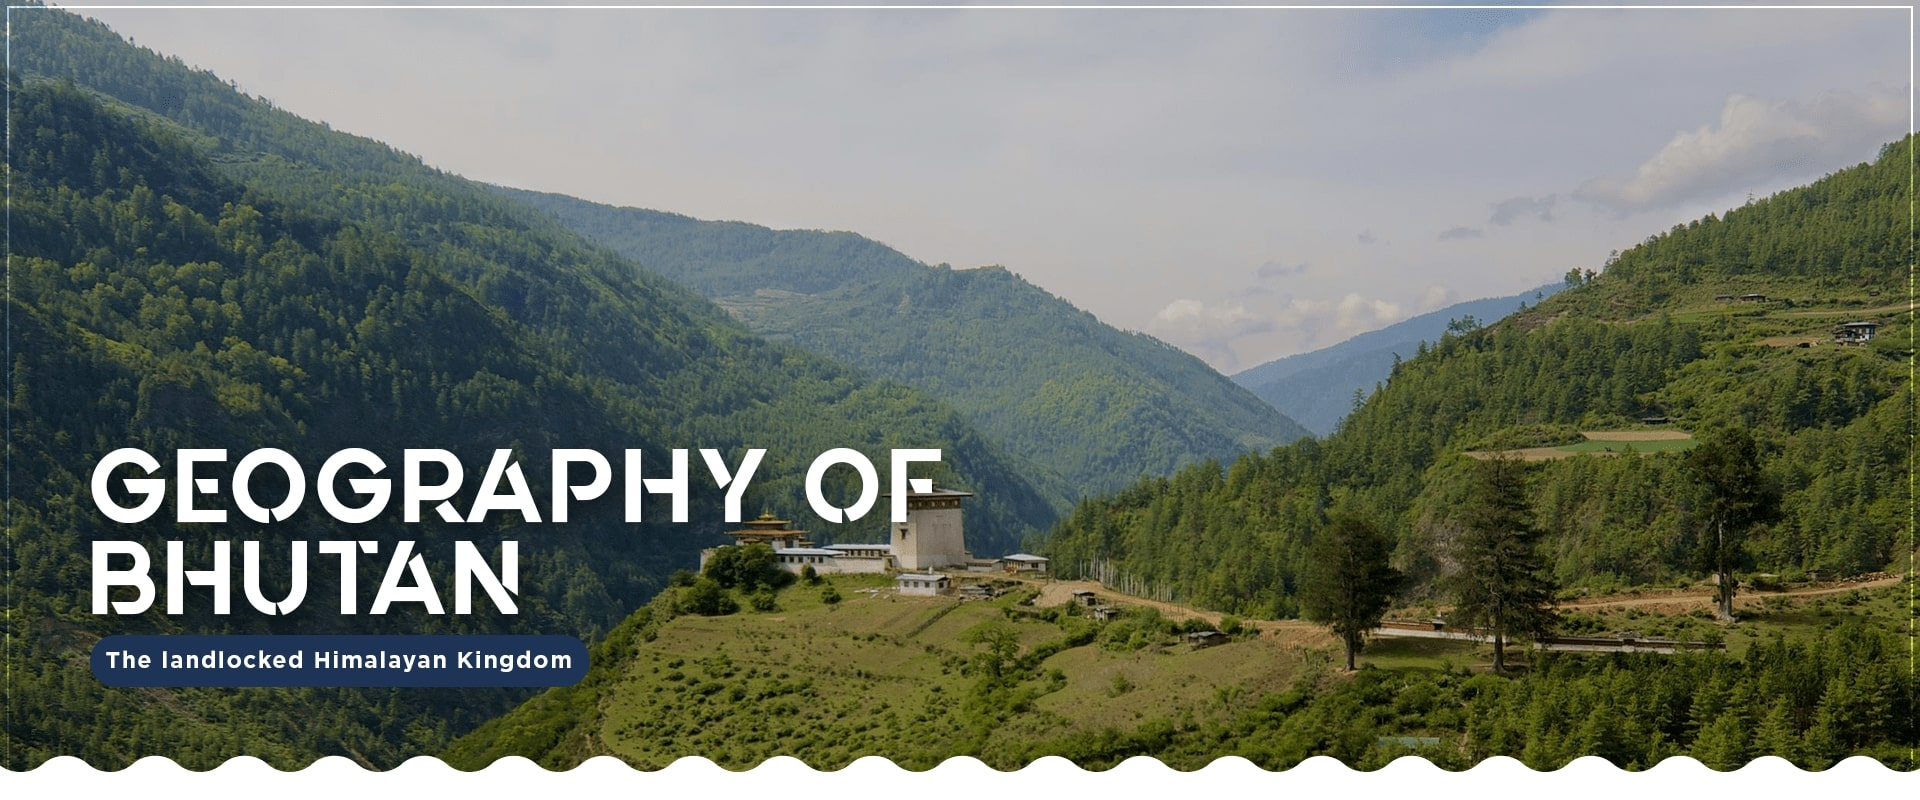 Geography of Bhutan